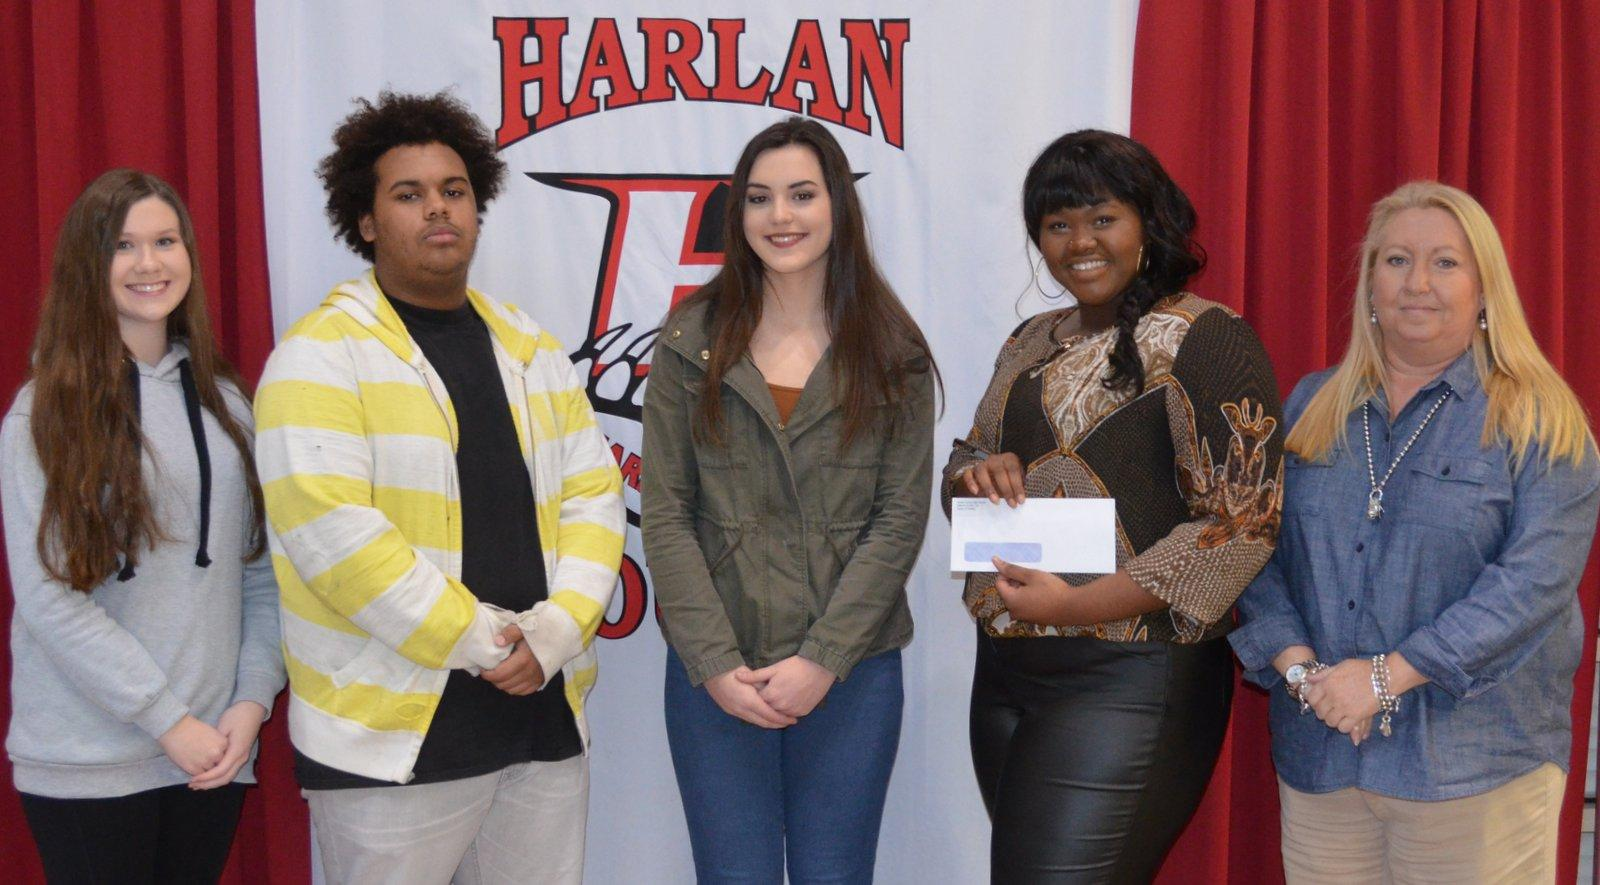 Harlan County High School Beta Club officials include, from left: Autumn Dunaway - vice president; Terrance Stephens - treasurer; Miranda Cook - secretary; Daesha Carr – president; and Tina Lawson, sponsor.